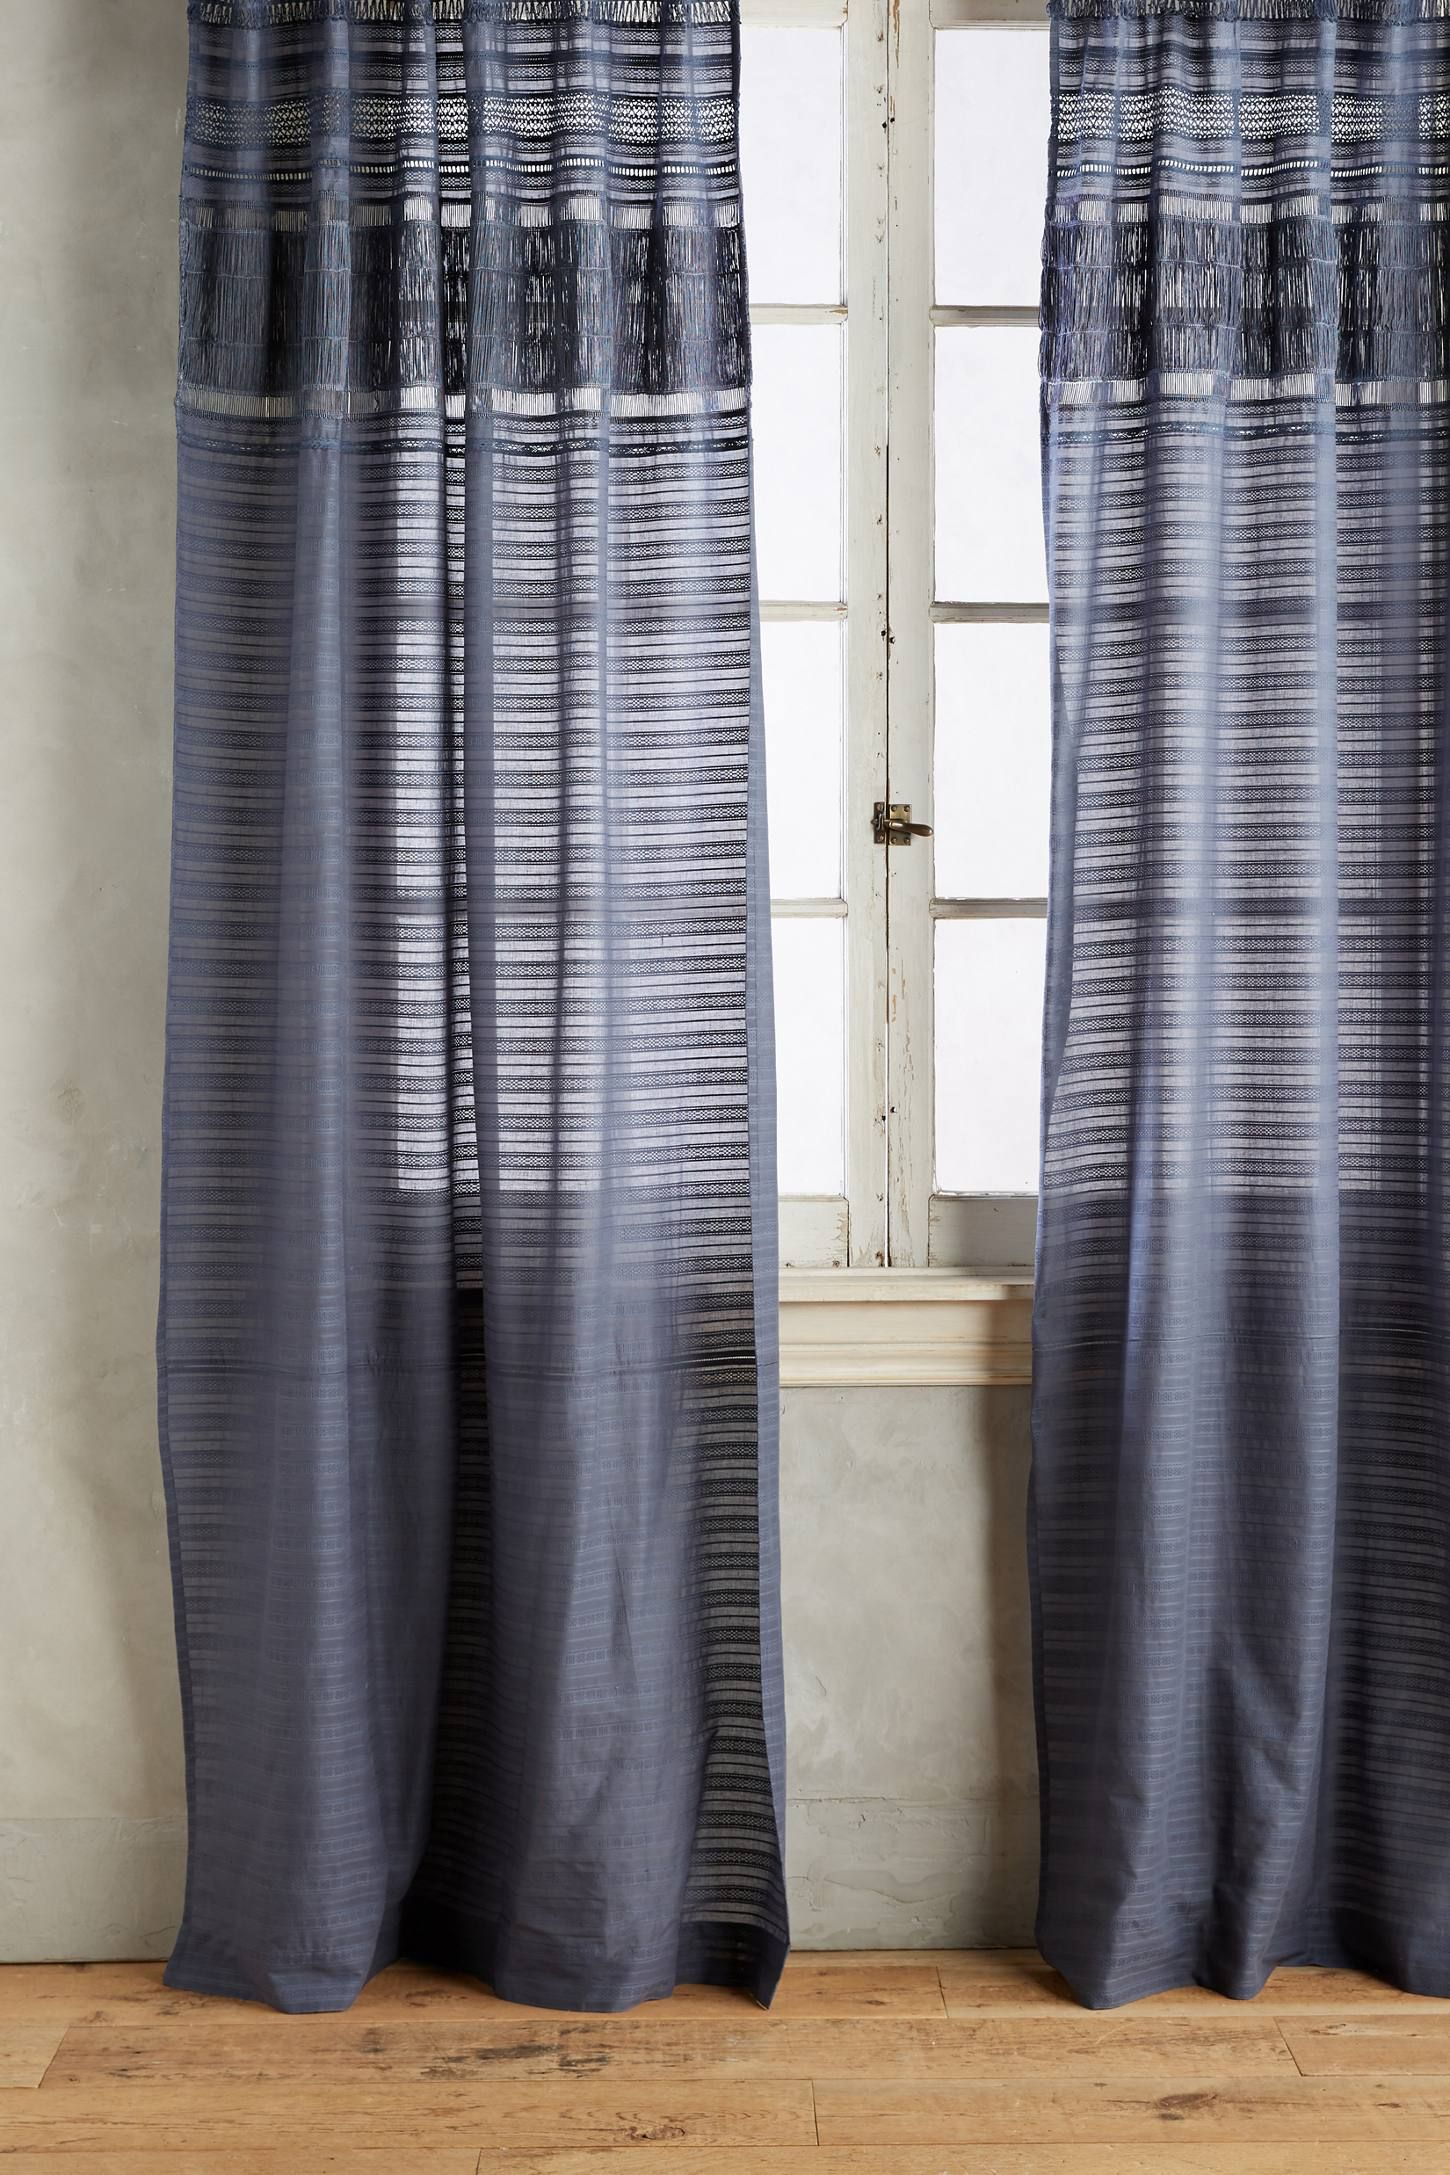 Bombay Tassel Finials Curtains Home Home Decor